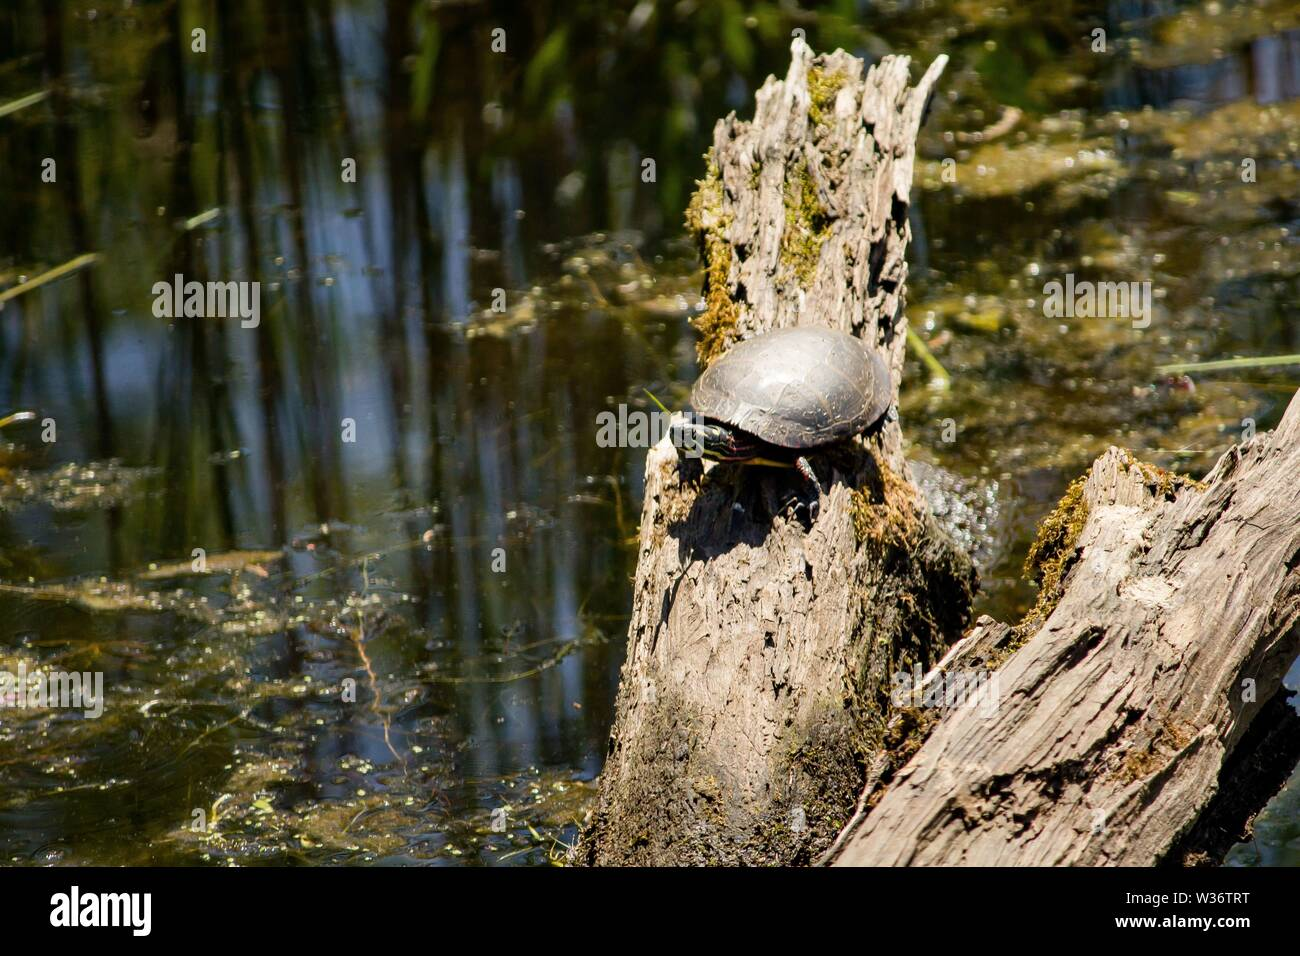 A painted turtle resting on a branch in water - Stock Image